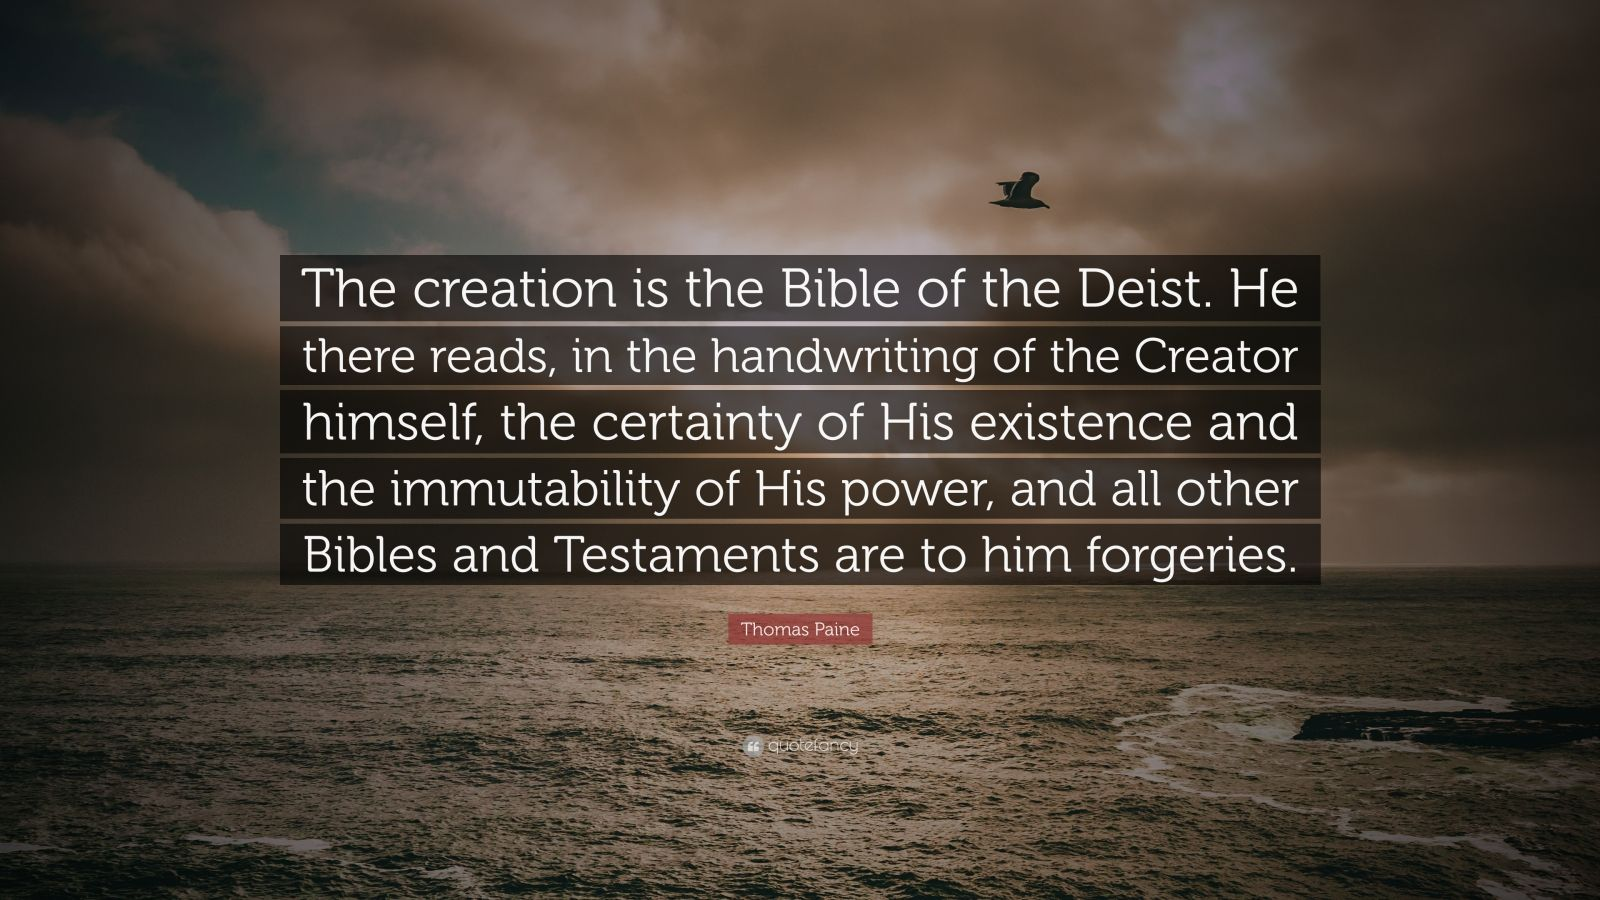 "Thomas Paine Quote: ""The creation is the Bible of the Deist. He there reads, in the handwriting of the Creator himself, the certainty of His existence and the immutability of His power, and all other Bibles and Testaments are to him forgeries."""